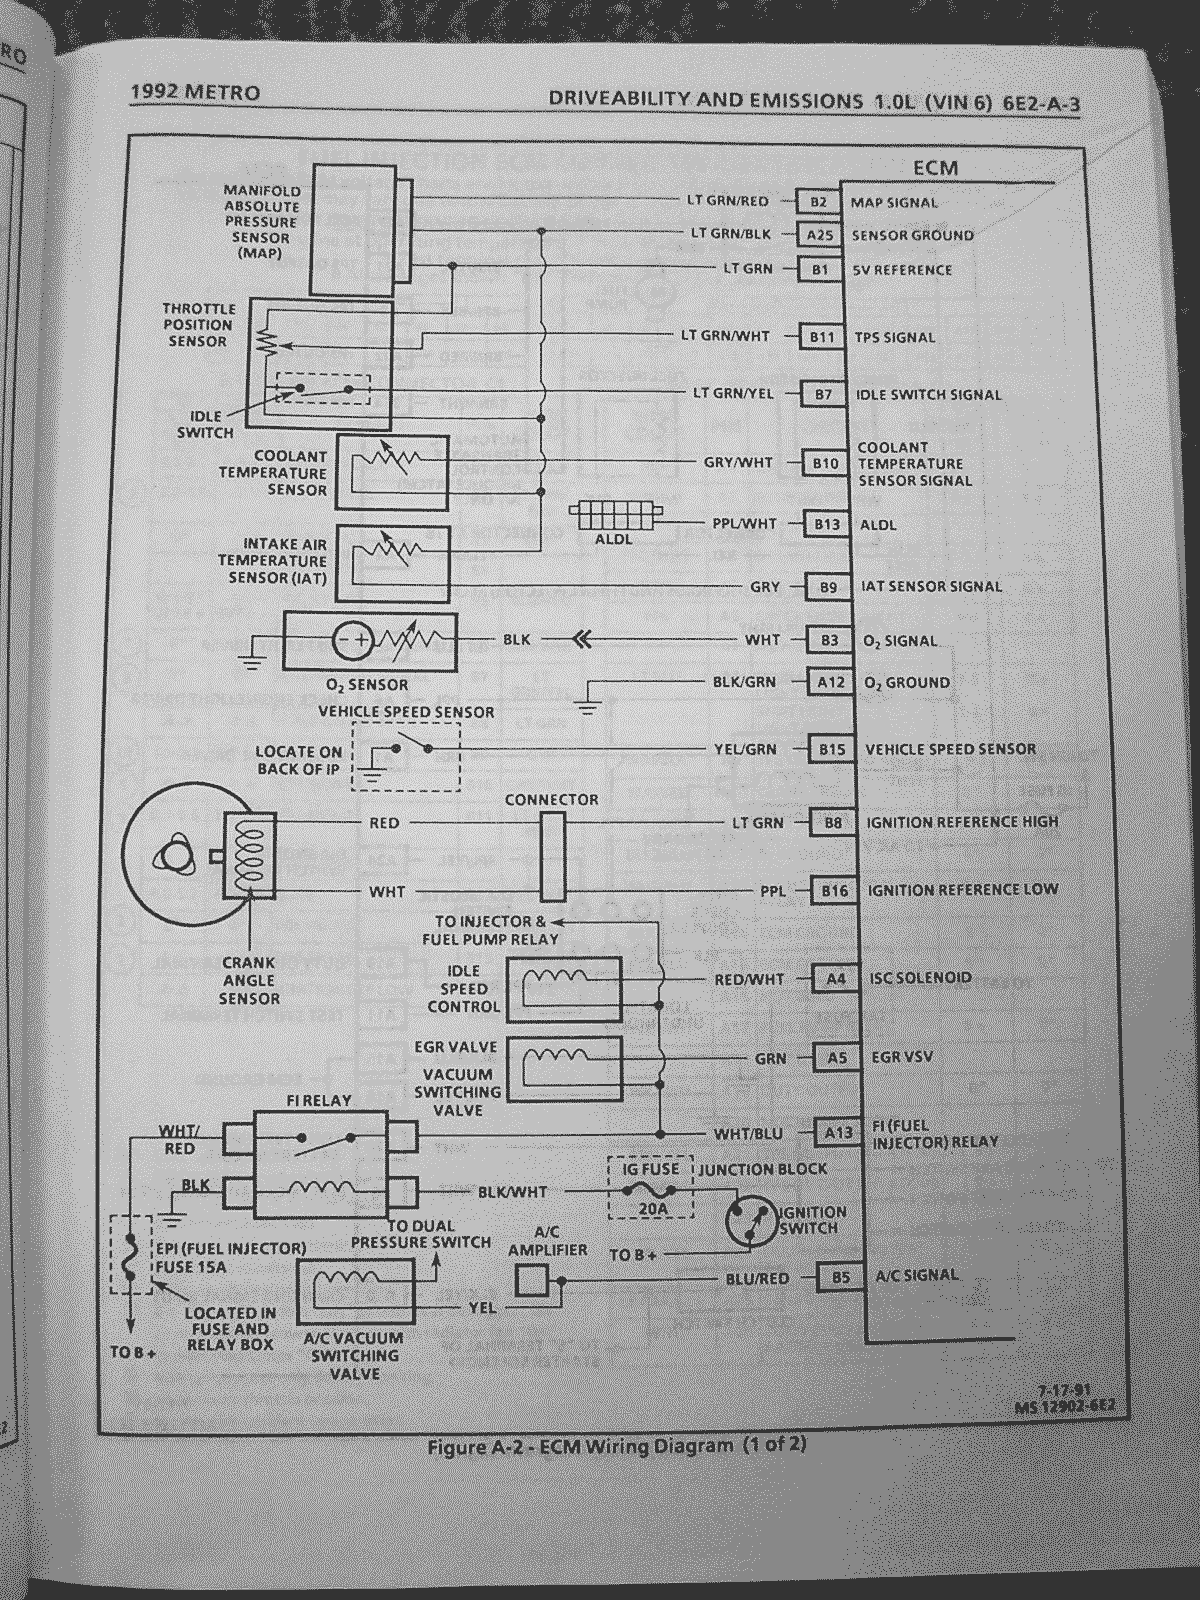 6e2 a 3 geo metro and suzuki swift wiring diagrams metroxfi com 1991 geo metro fuse box diagram at aneh.co